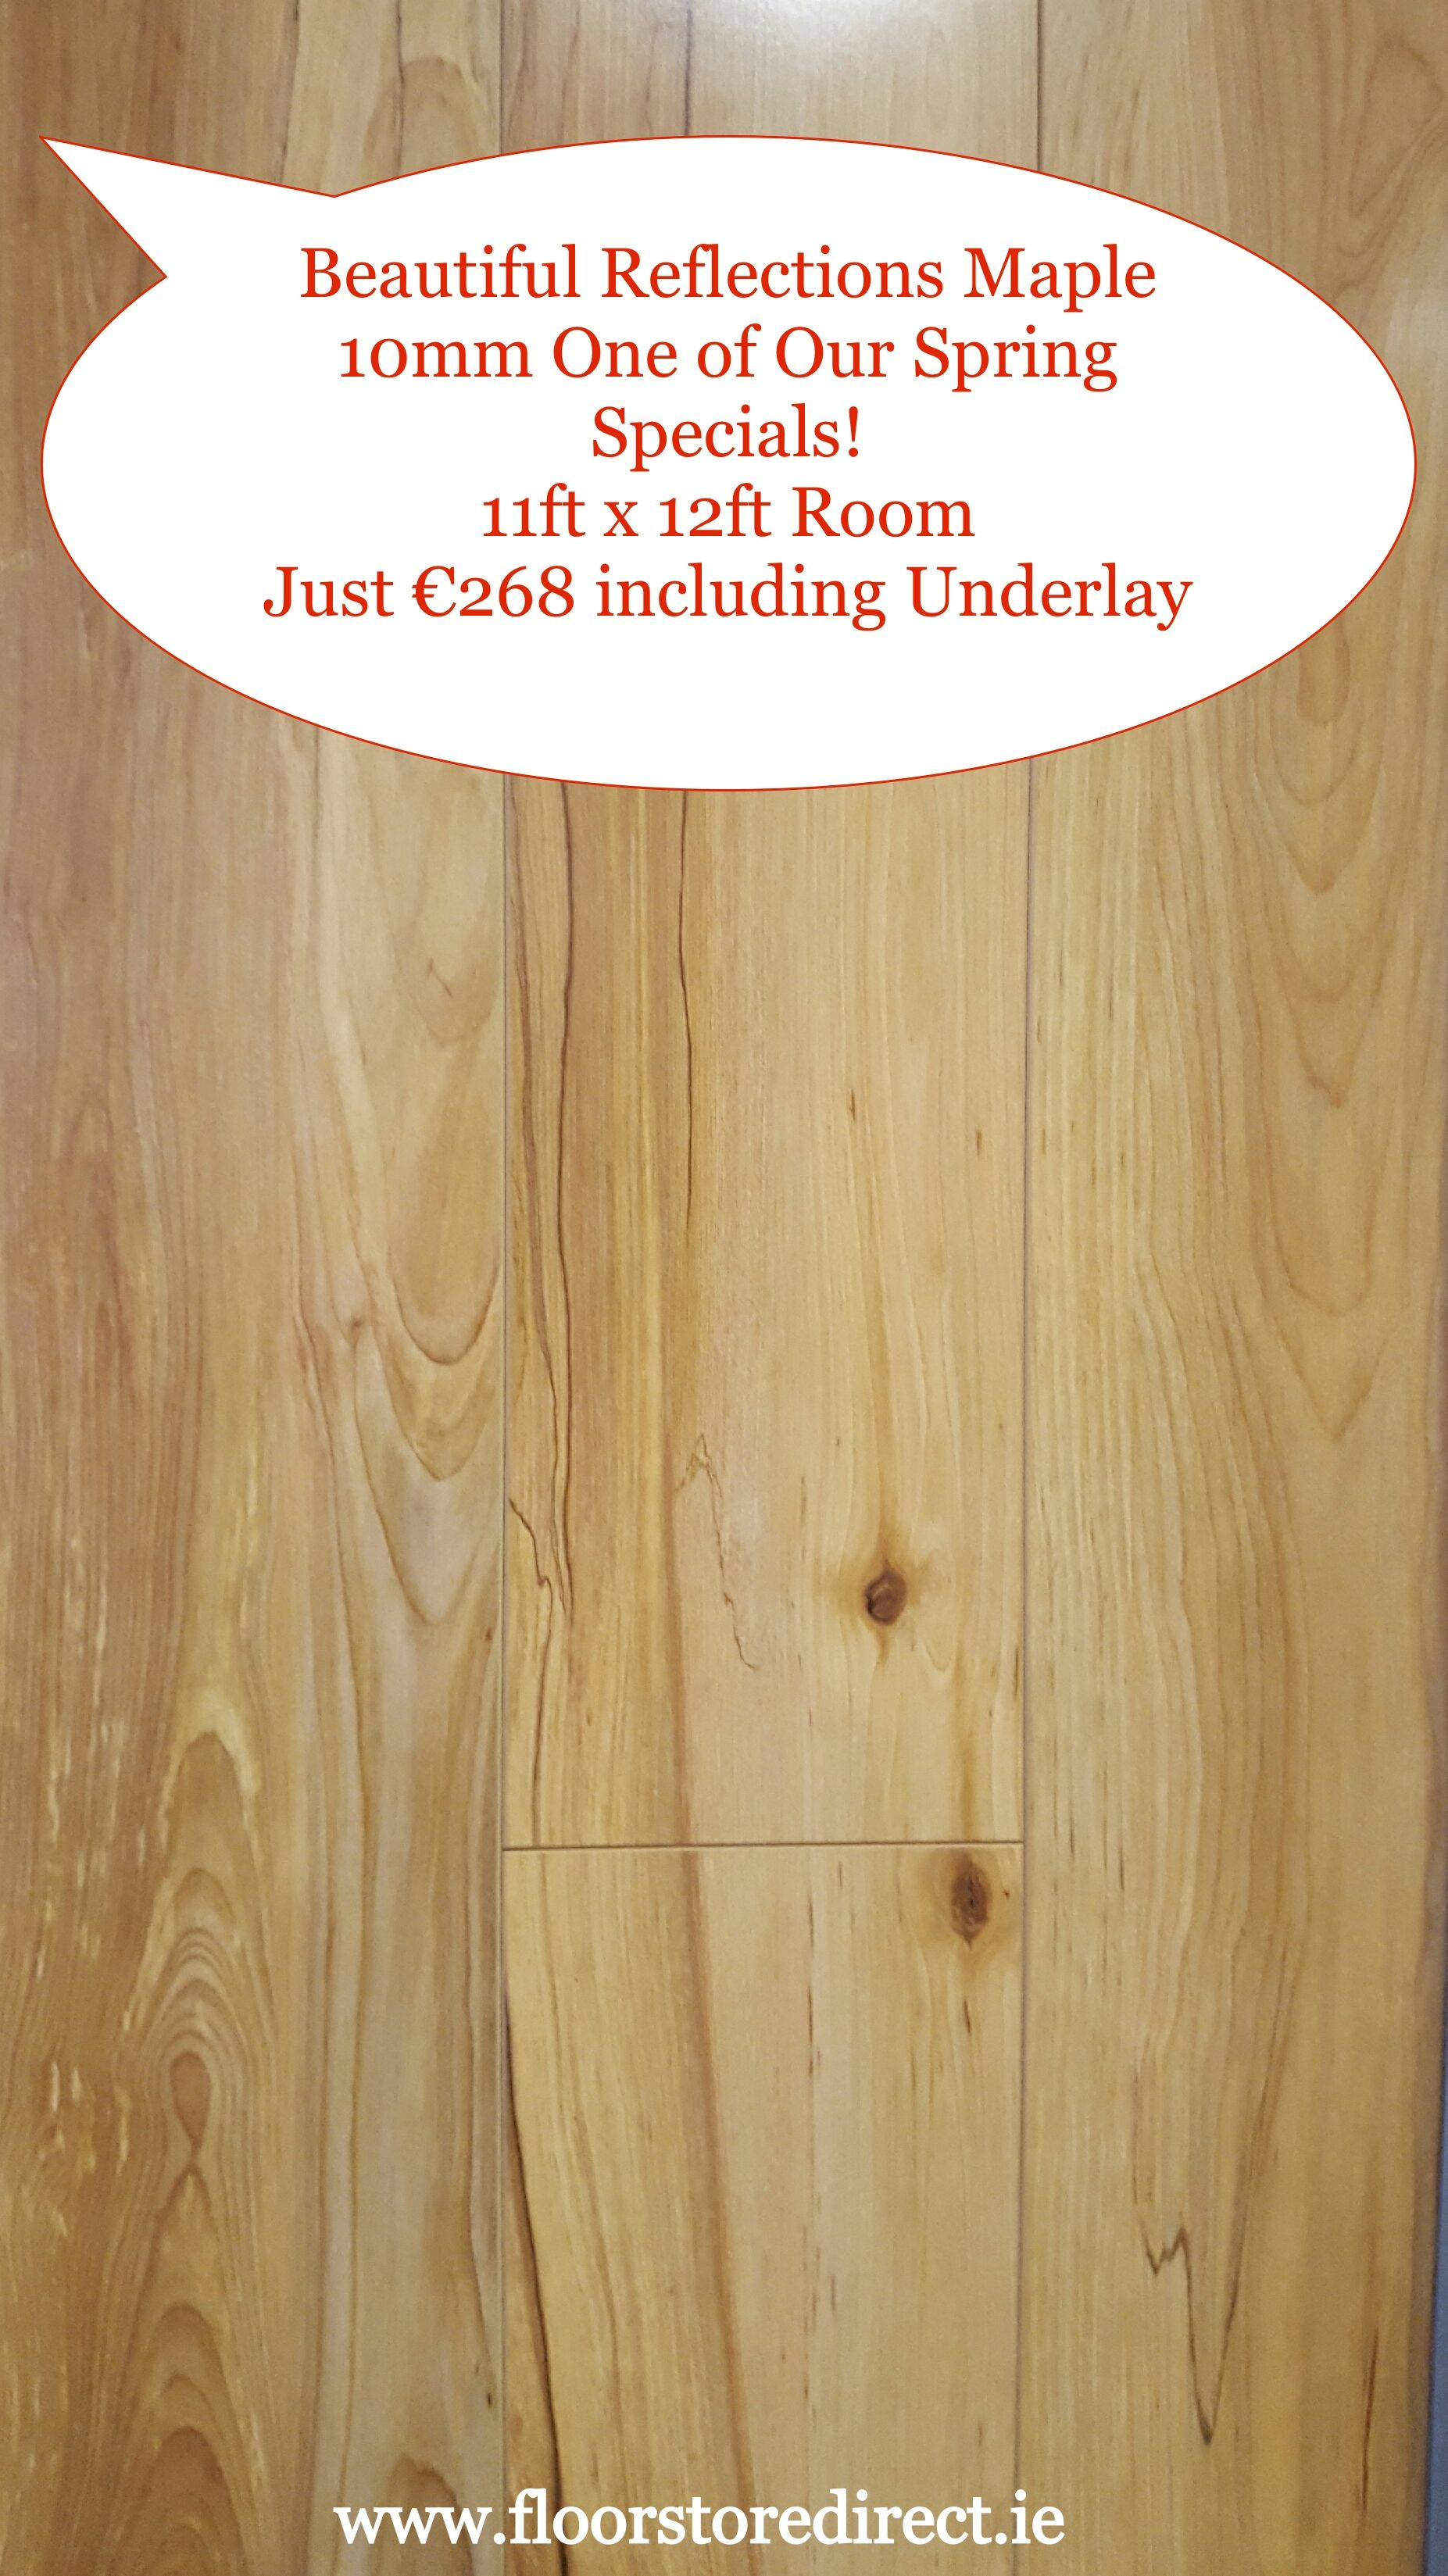 Our Marvellous Reflections Maple Laminate Wood Flooring 11ft X 12ft Room Just 268 Including Underlay Wood Floors Wood Laminate Laminate